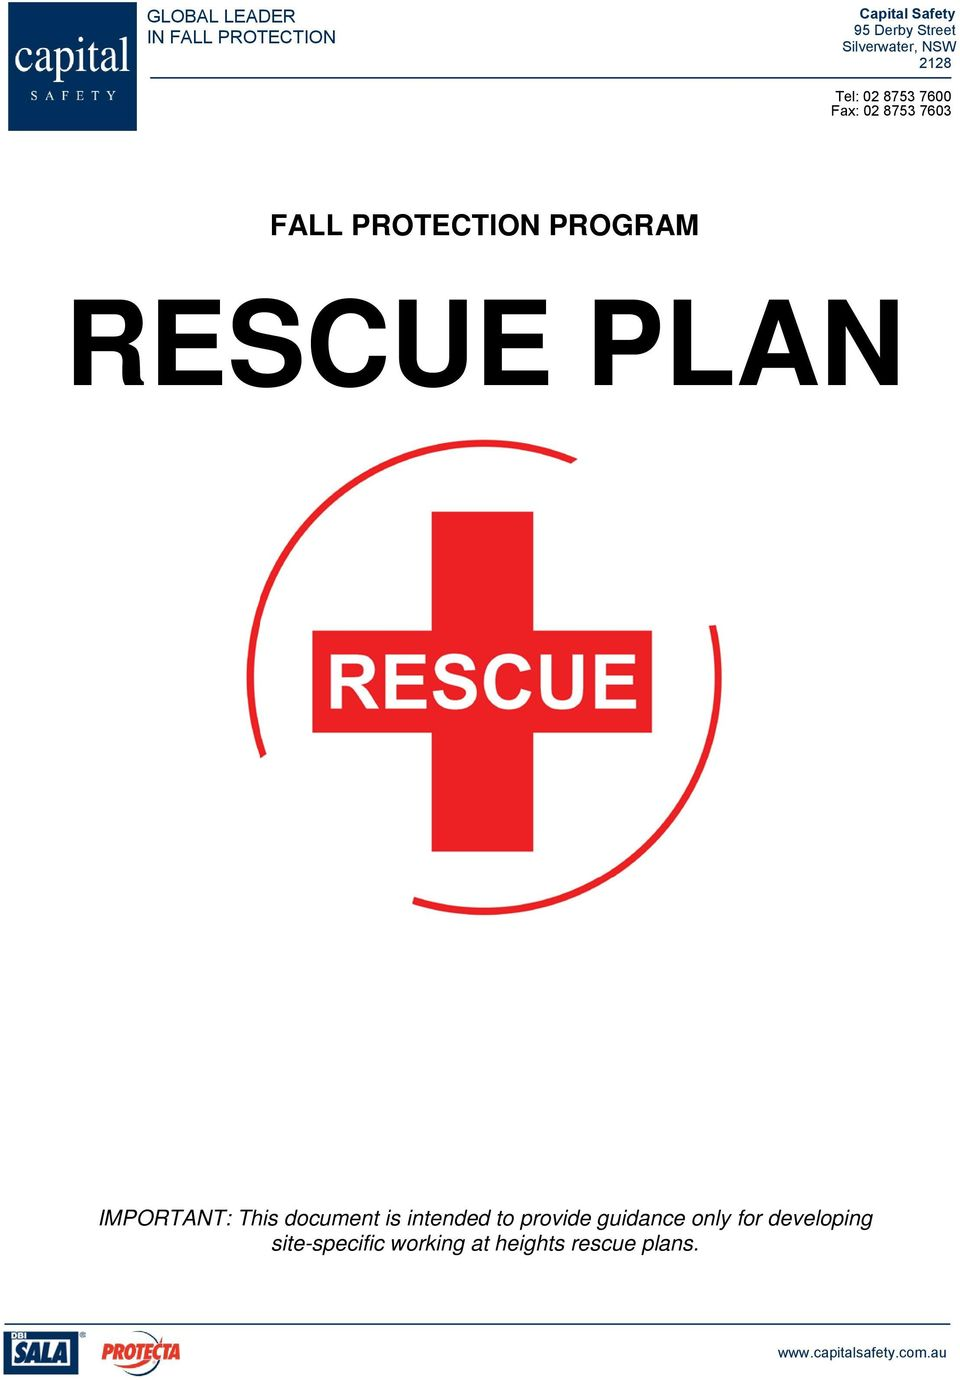 PLAN IMPORTANT: This document is intended to provide guidance only for